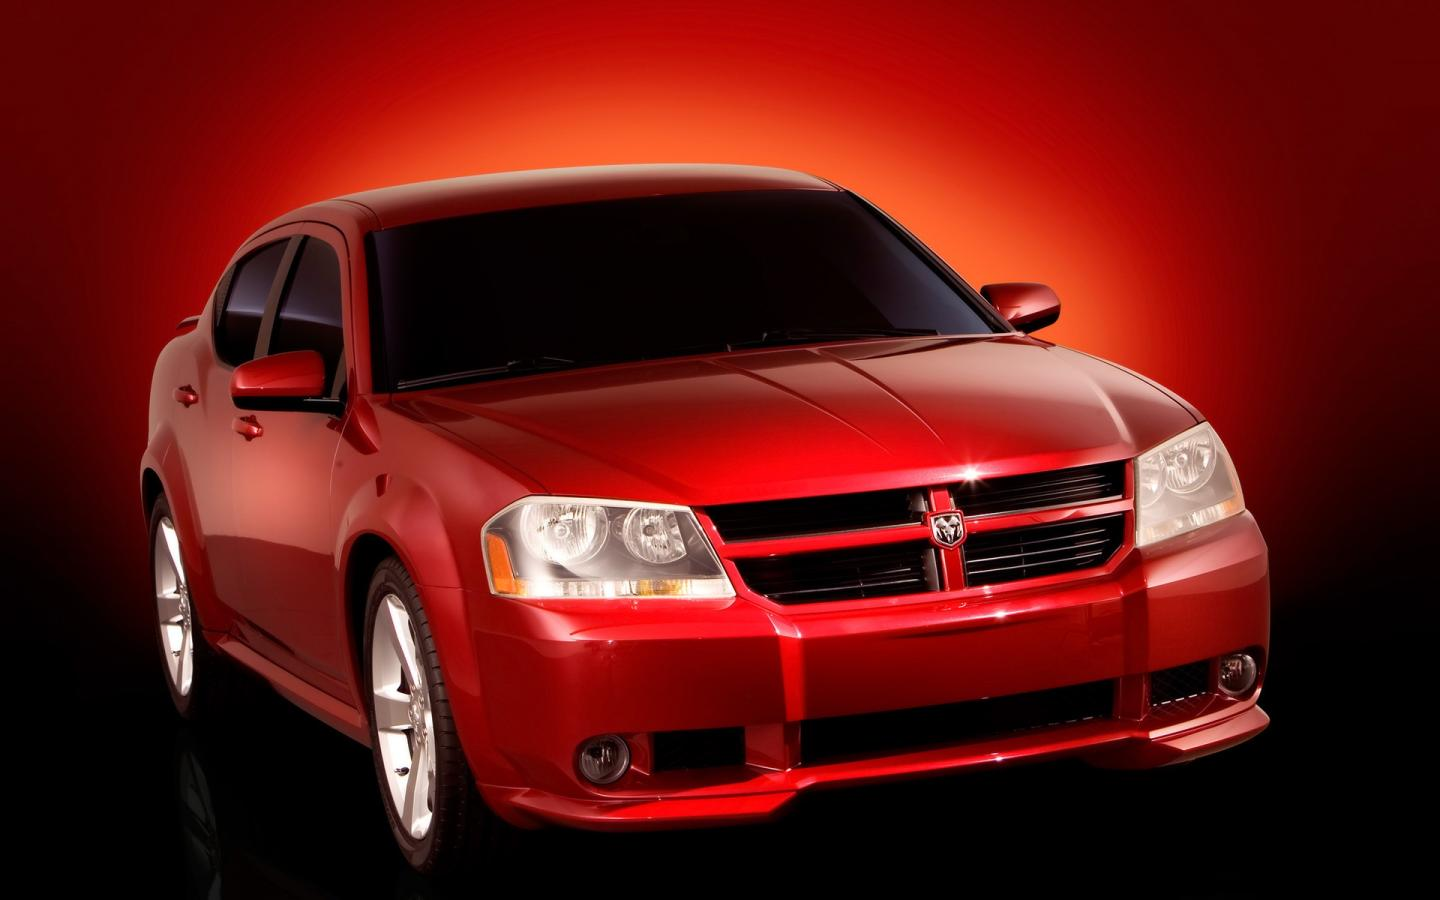 2006 Dodge Avenger Concept Front Angle 1440x900